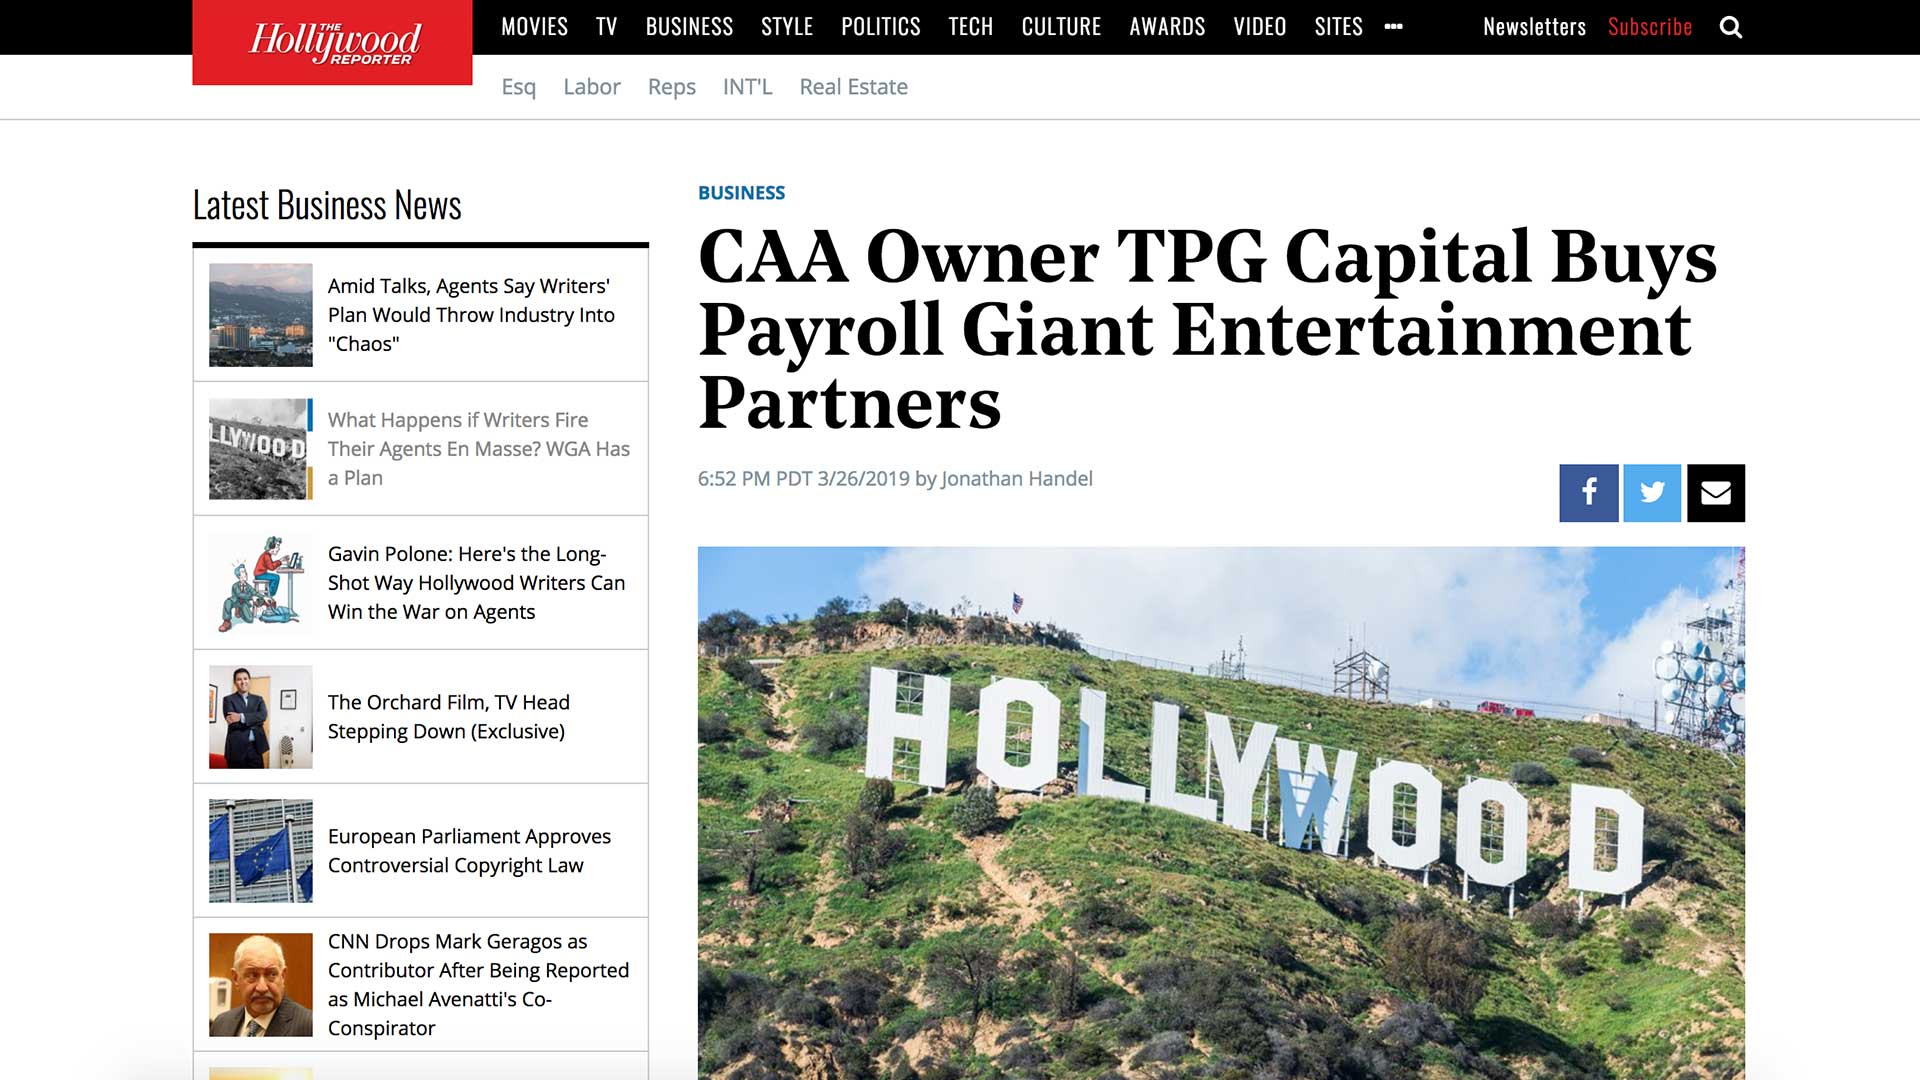 Fairness Rocks News CAA Owner TPG Capital Buys Payroll Giant Entertainment Partners